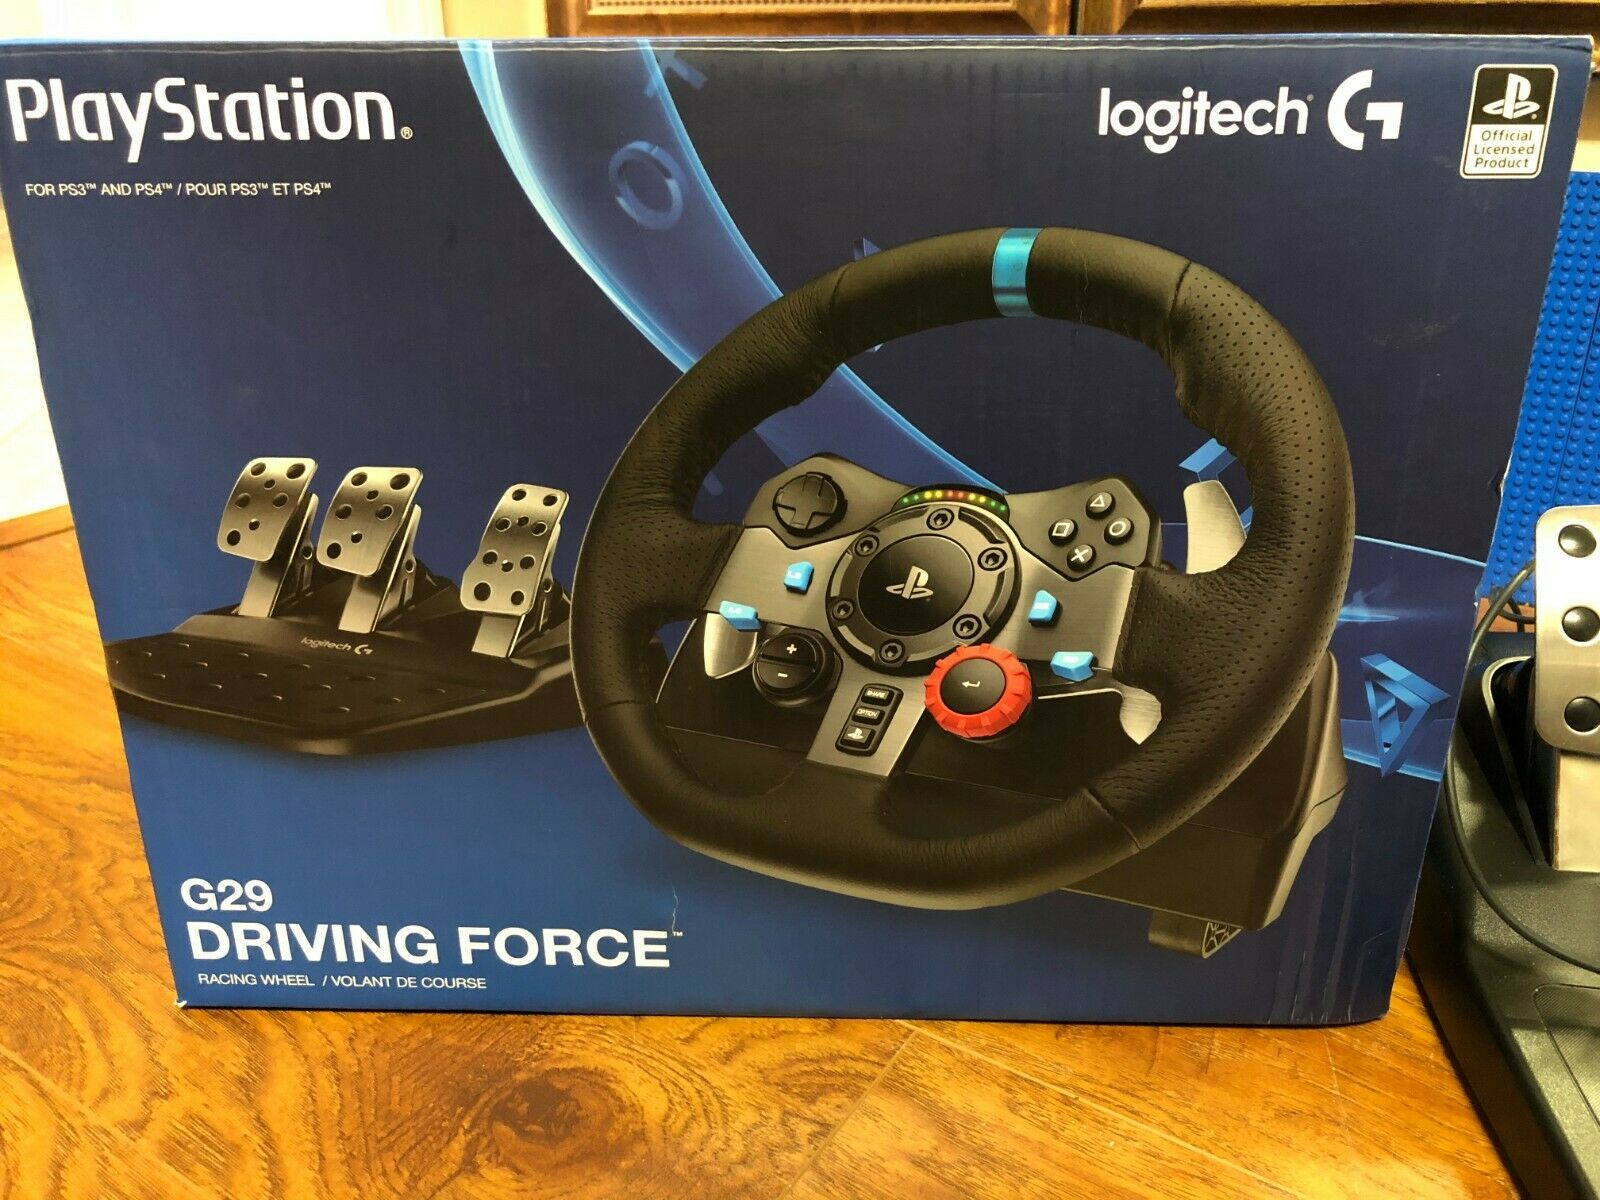 Logitech Dual-Motor Feedback Driving Force G29 Gaming Racing Wheel PS4 PC Pedals +14704086638